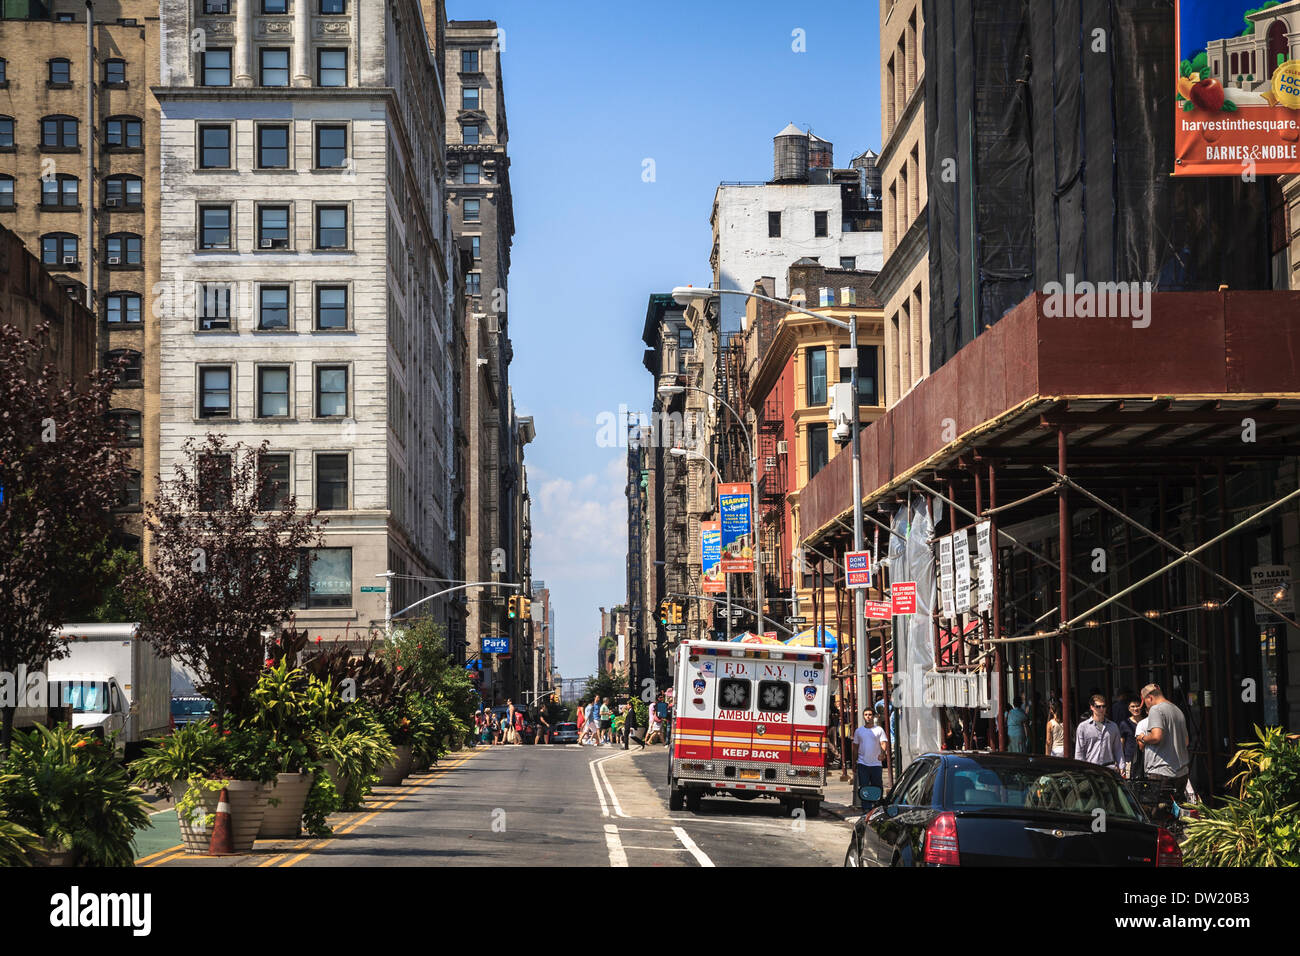 On 7th Avenue near the Union park in New York, USA Stock Photo